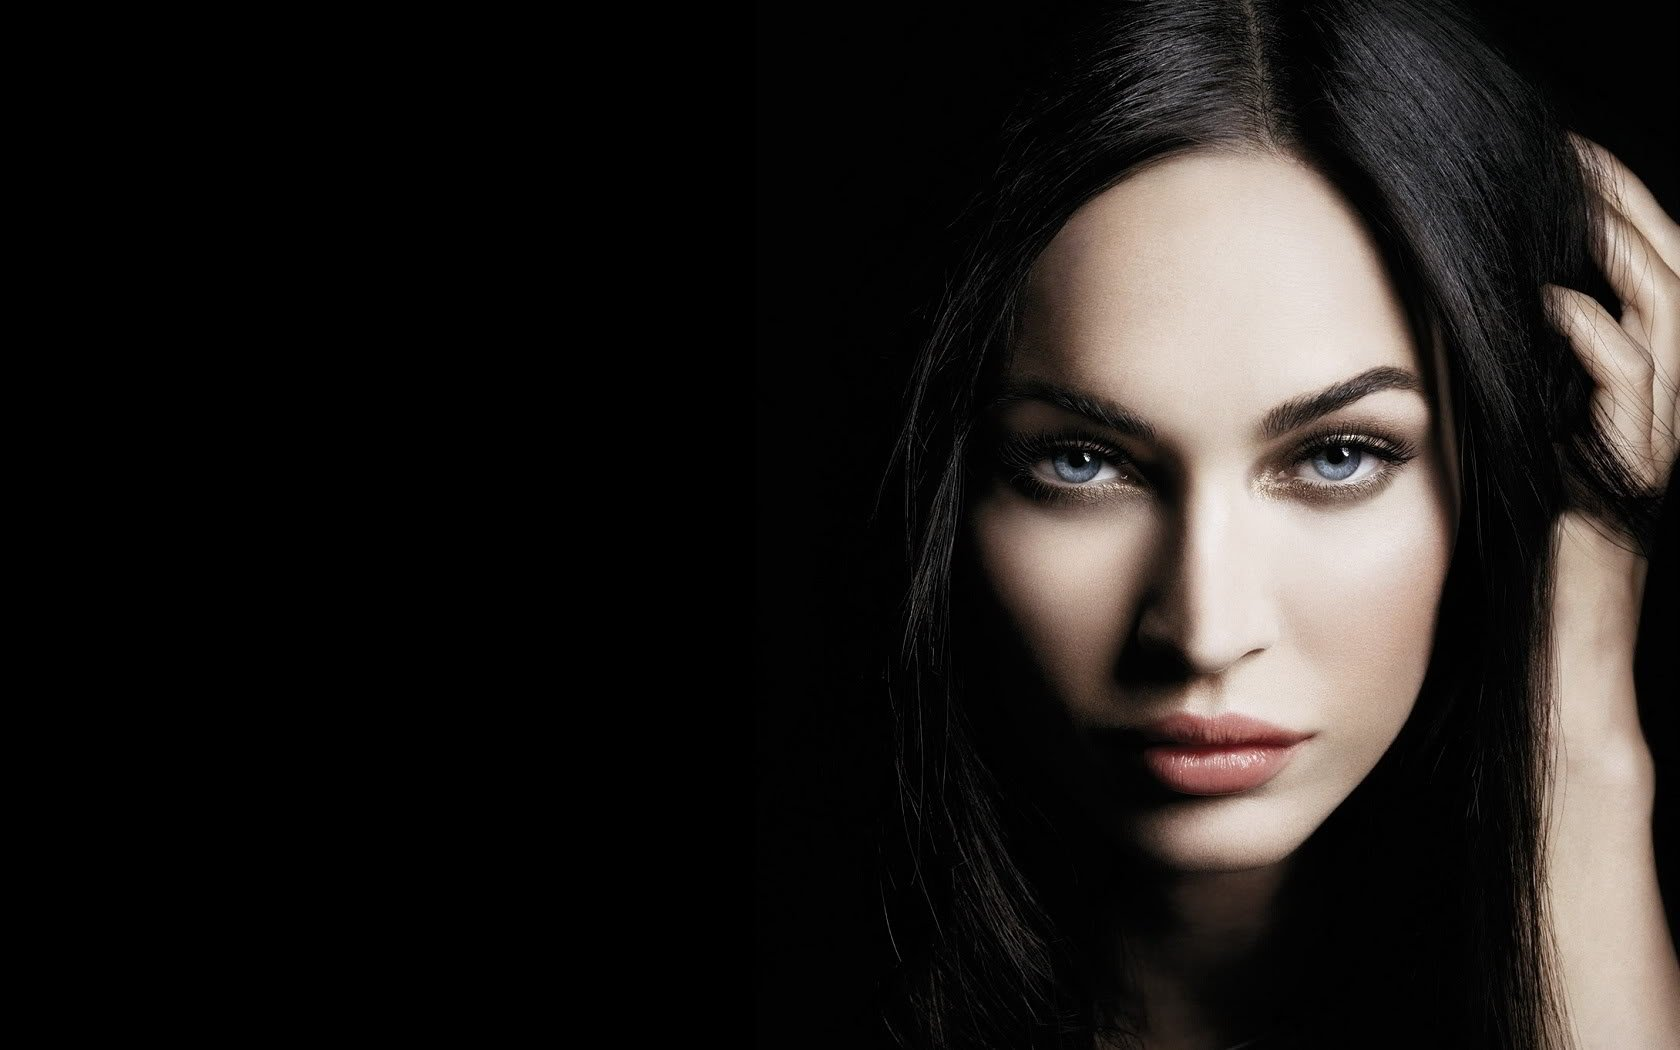 TOYS WALLS MEGAN FOX WALLPAPER 1680x1050 1680x1050